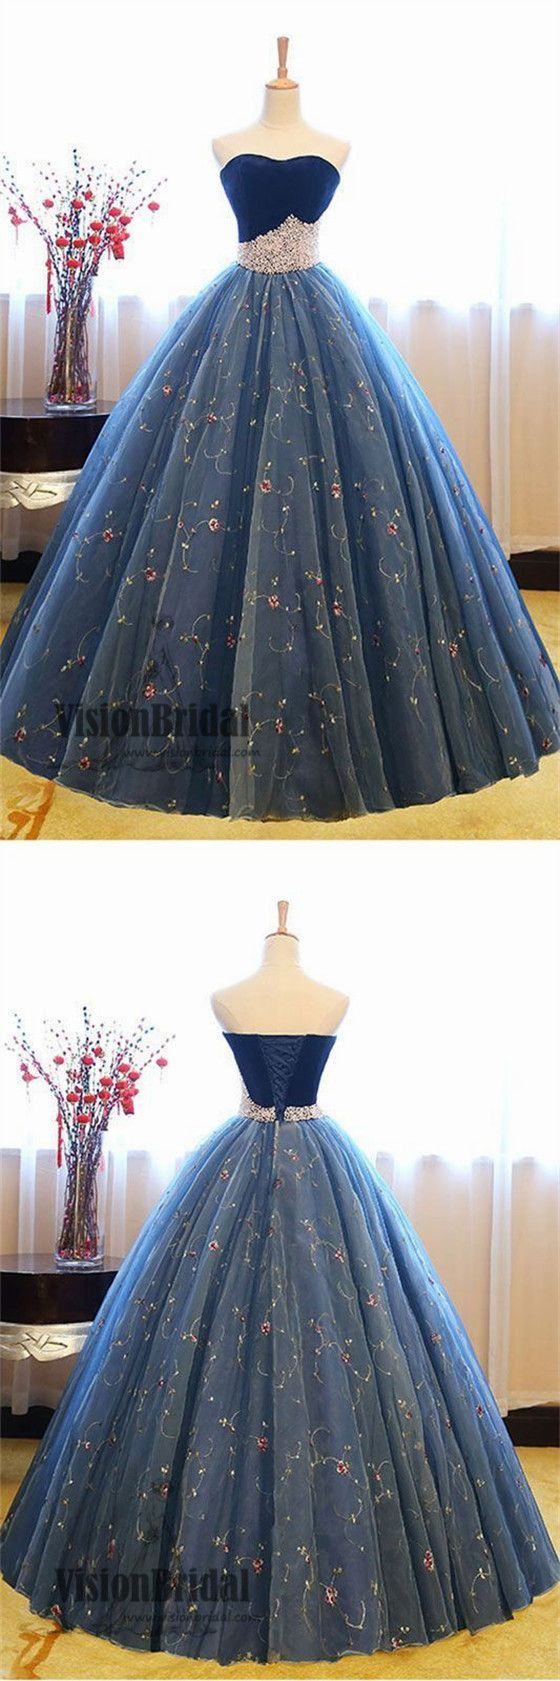 2018 Newest Sweetheart Lace Up Ball Gown With Pearl, Charming Sleeveless Prom Dress, VB0400 #promdress #promdresses #longpromdresses #ballgown